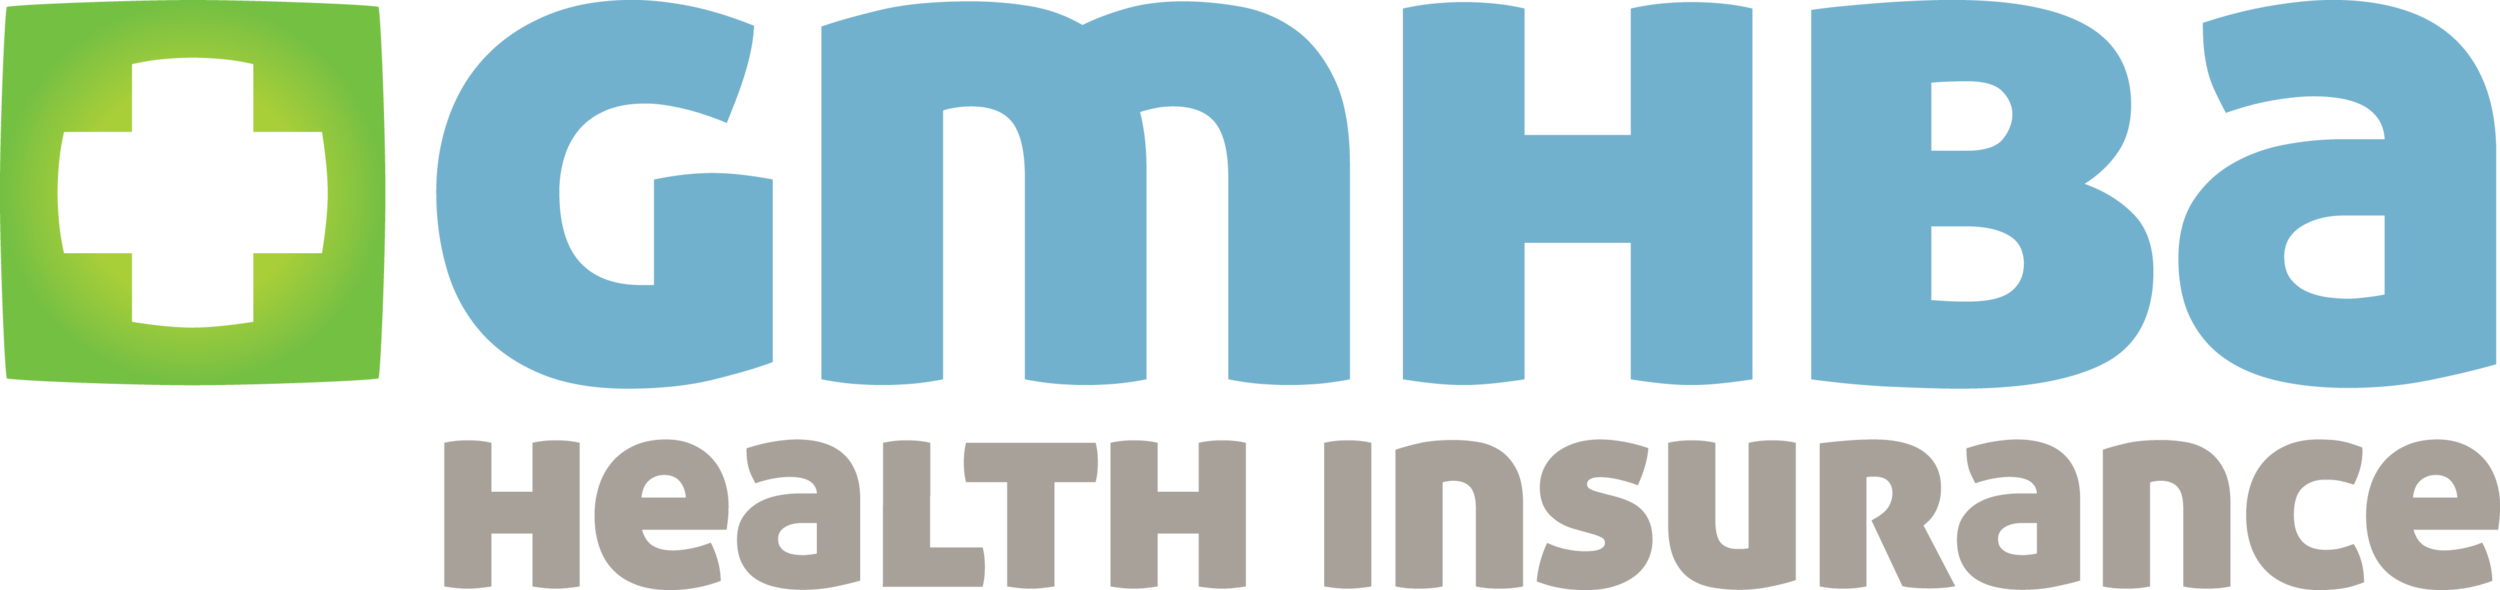 GMHBA-Health-Insurance-Review1.png